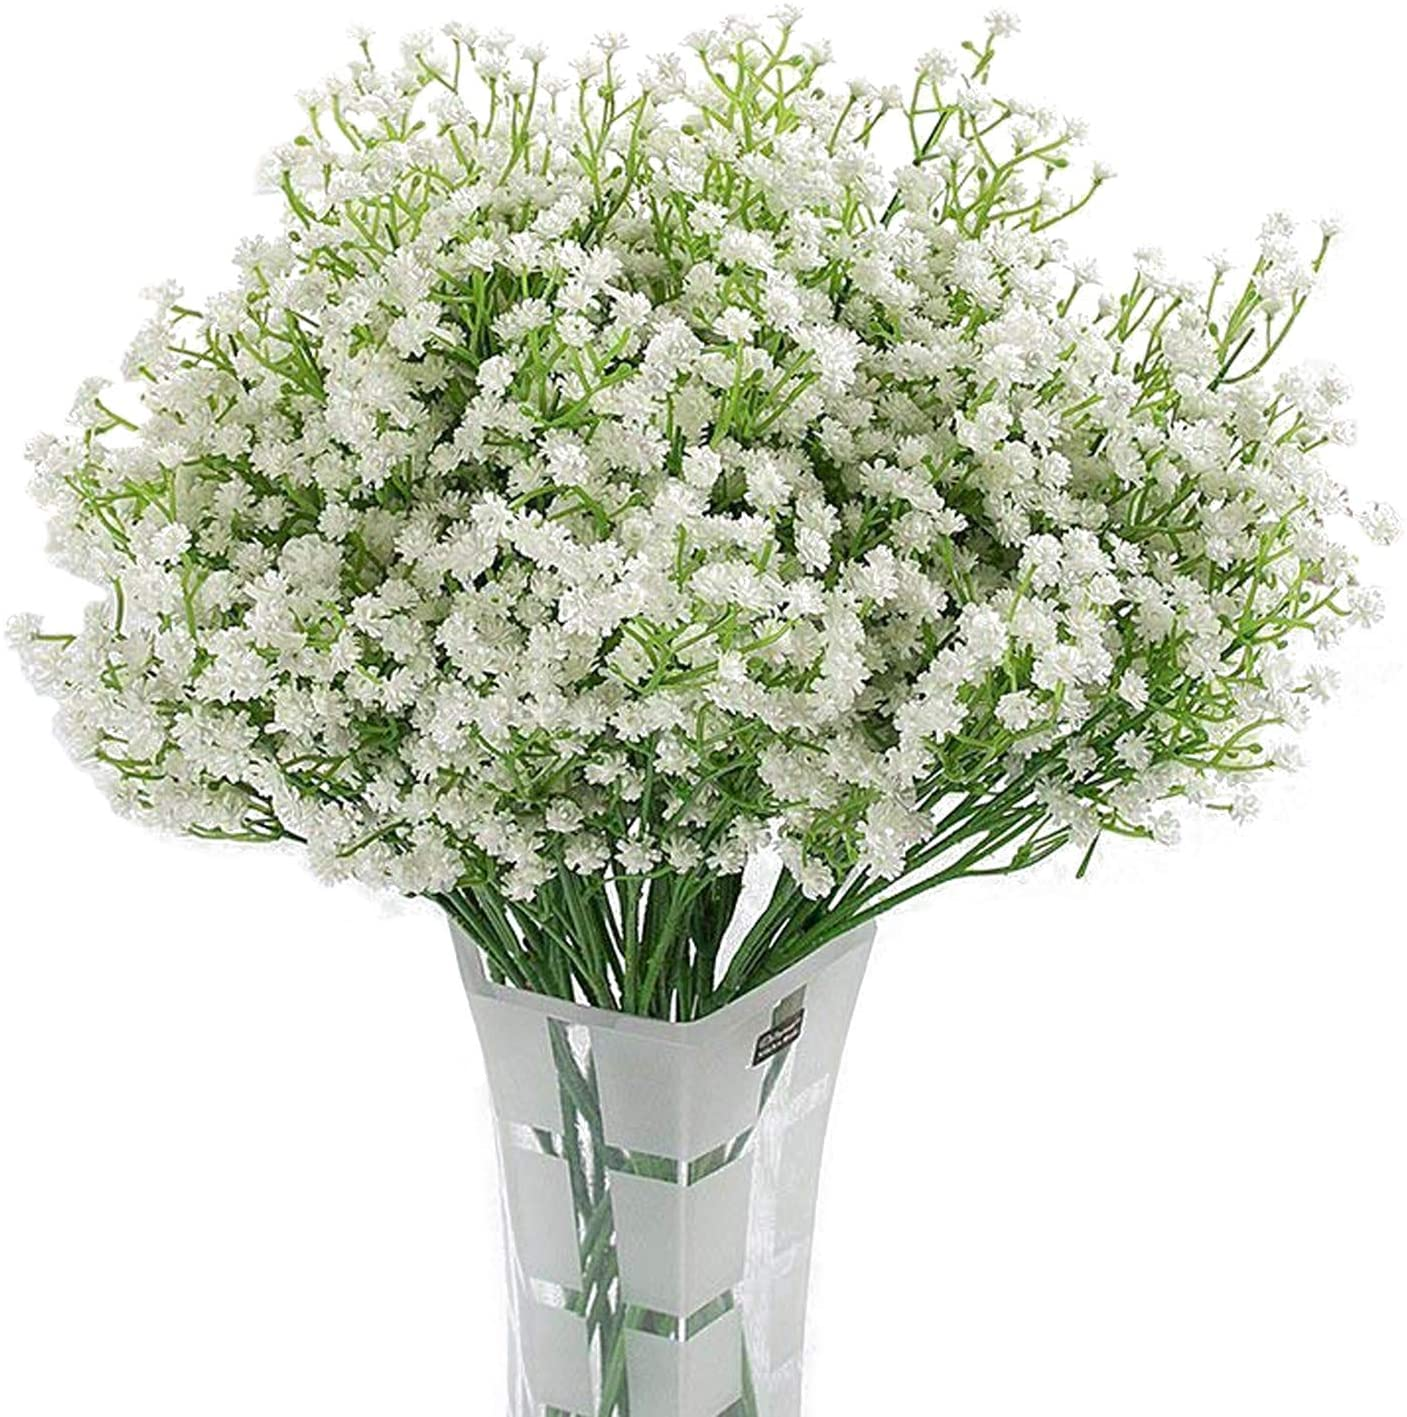 Homcomoda Artificial Flowers Babies Breath Flowers Fake Gypsophila Plants Bouquets For Wedding Home Diy Decoration A White 12pc Amazon Ca Home Kitchen